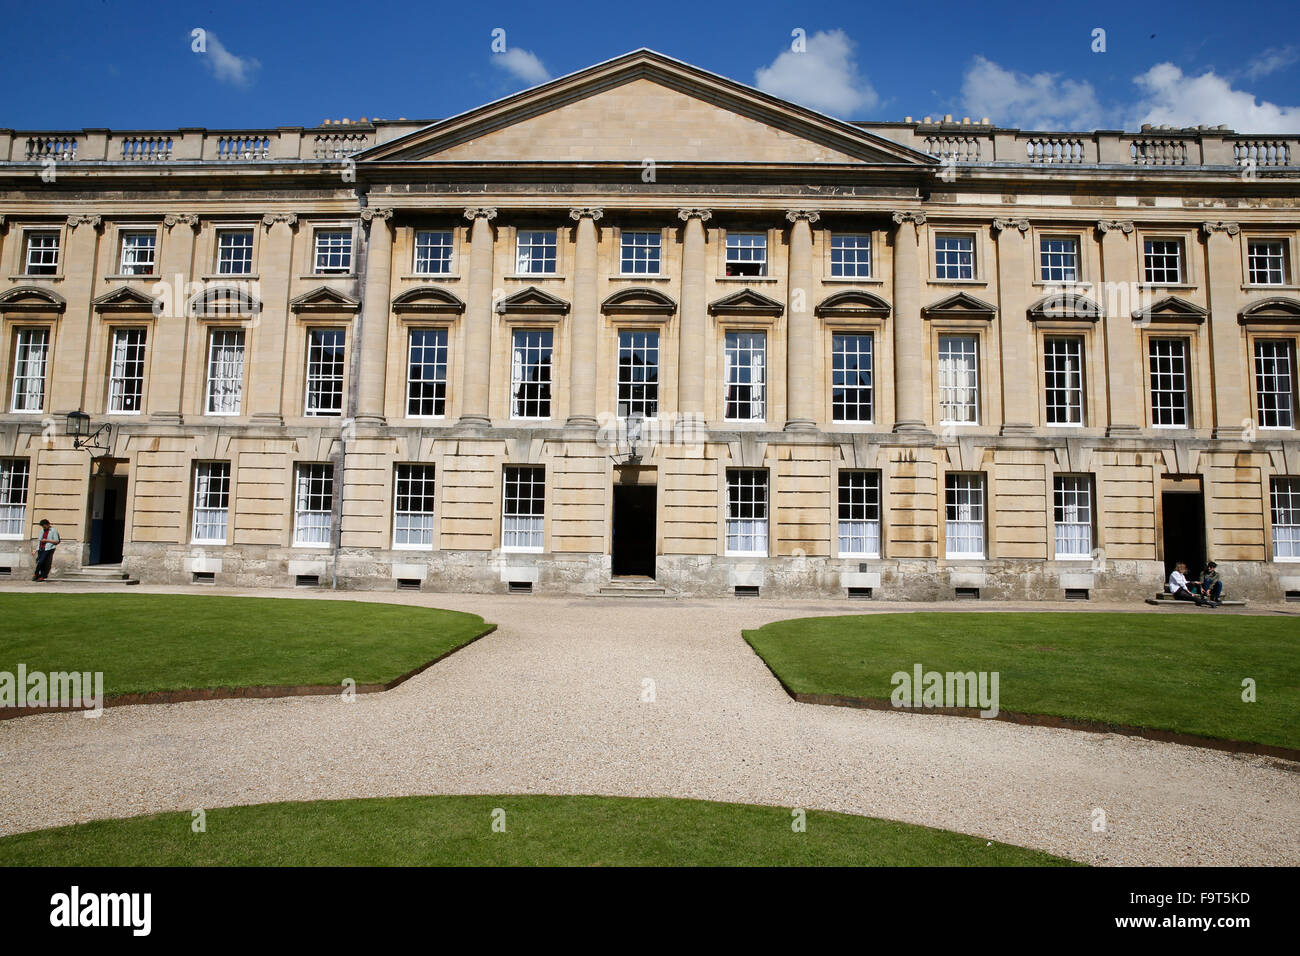 Christ Church college, Oxford. - Stock Image